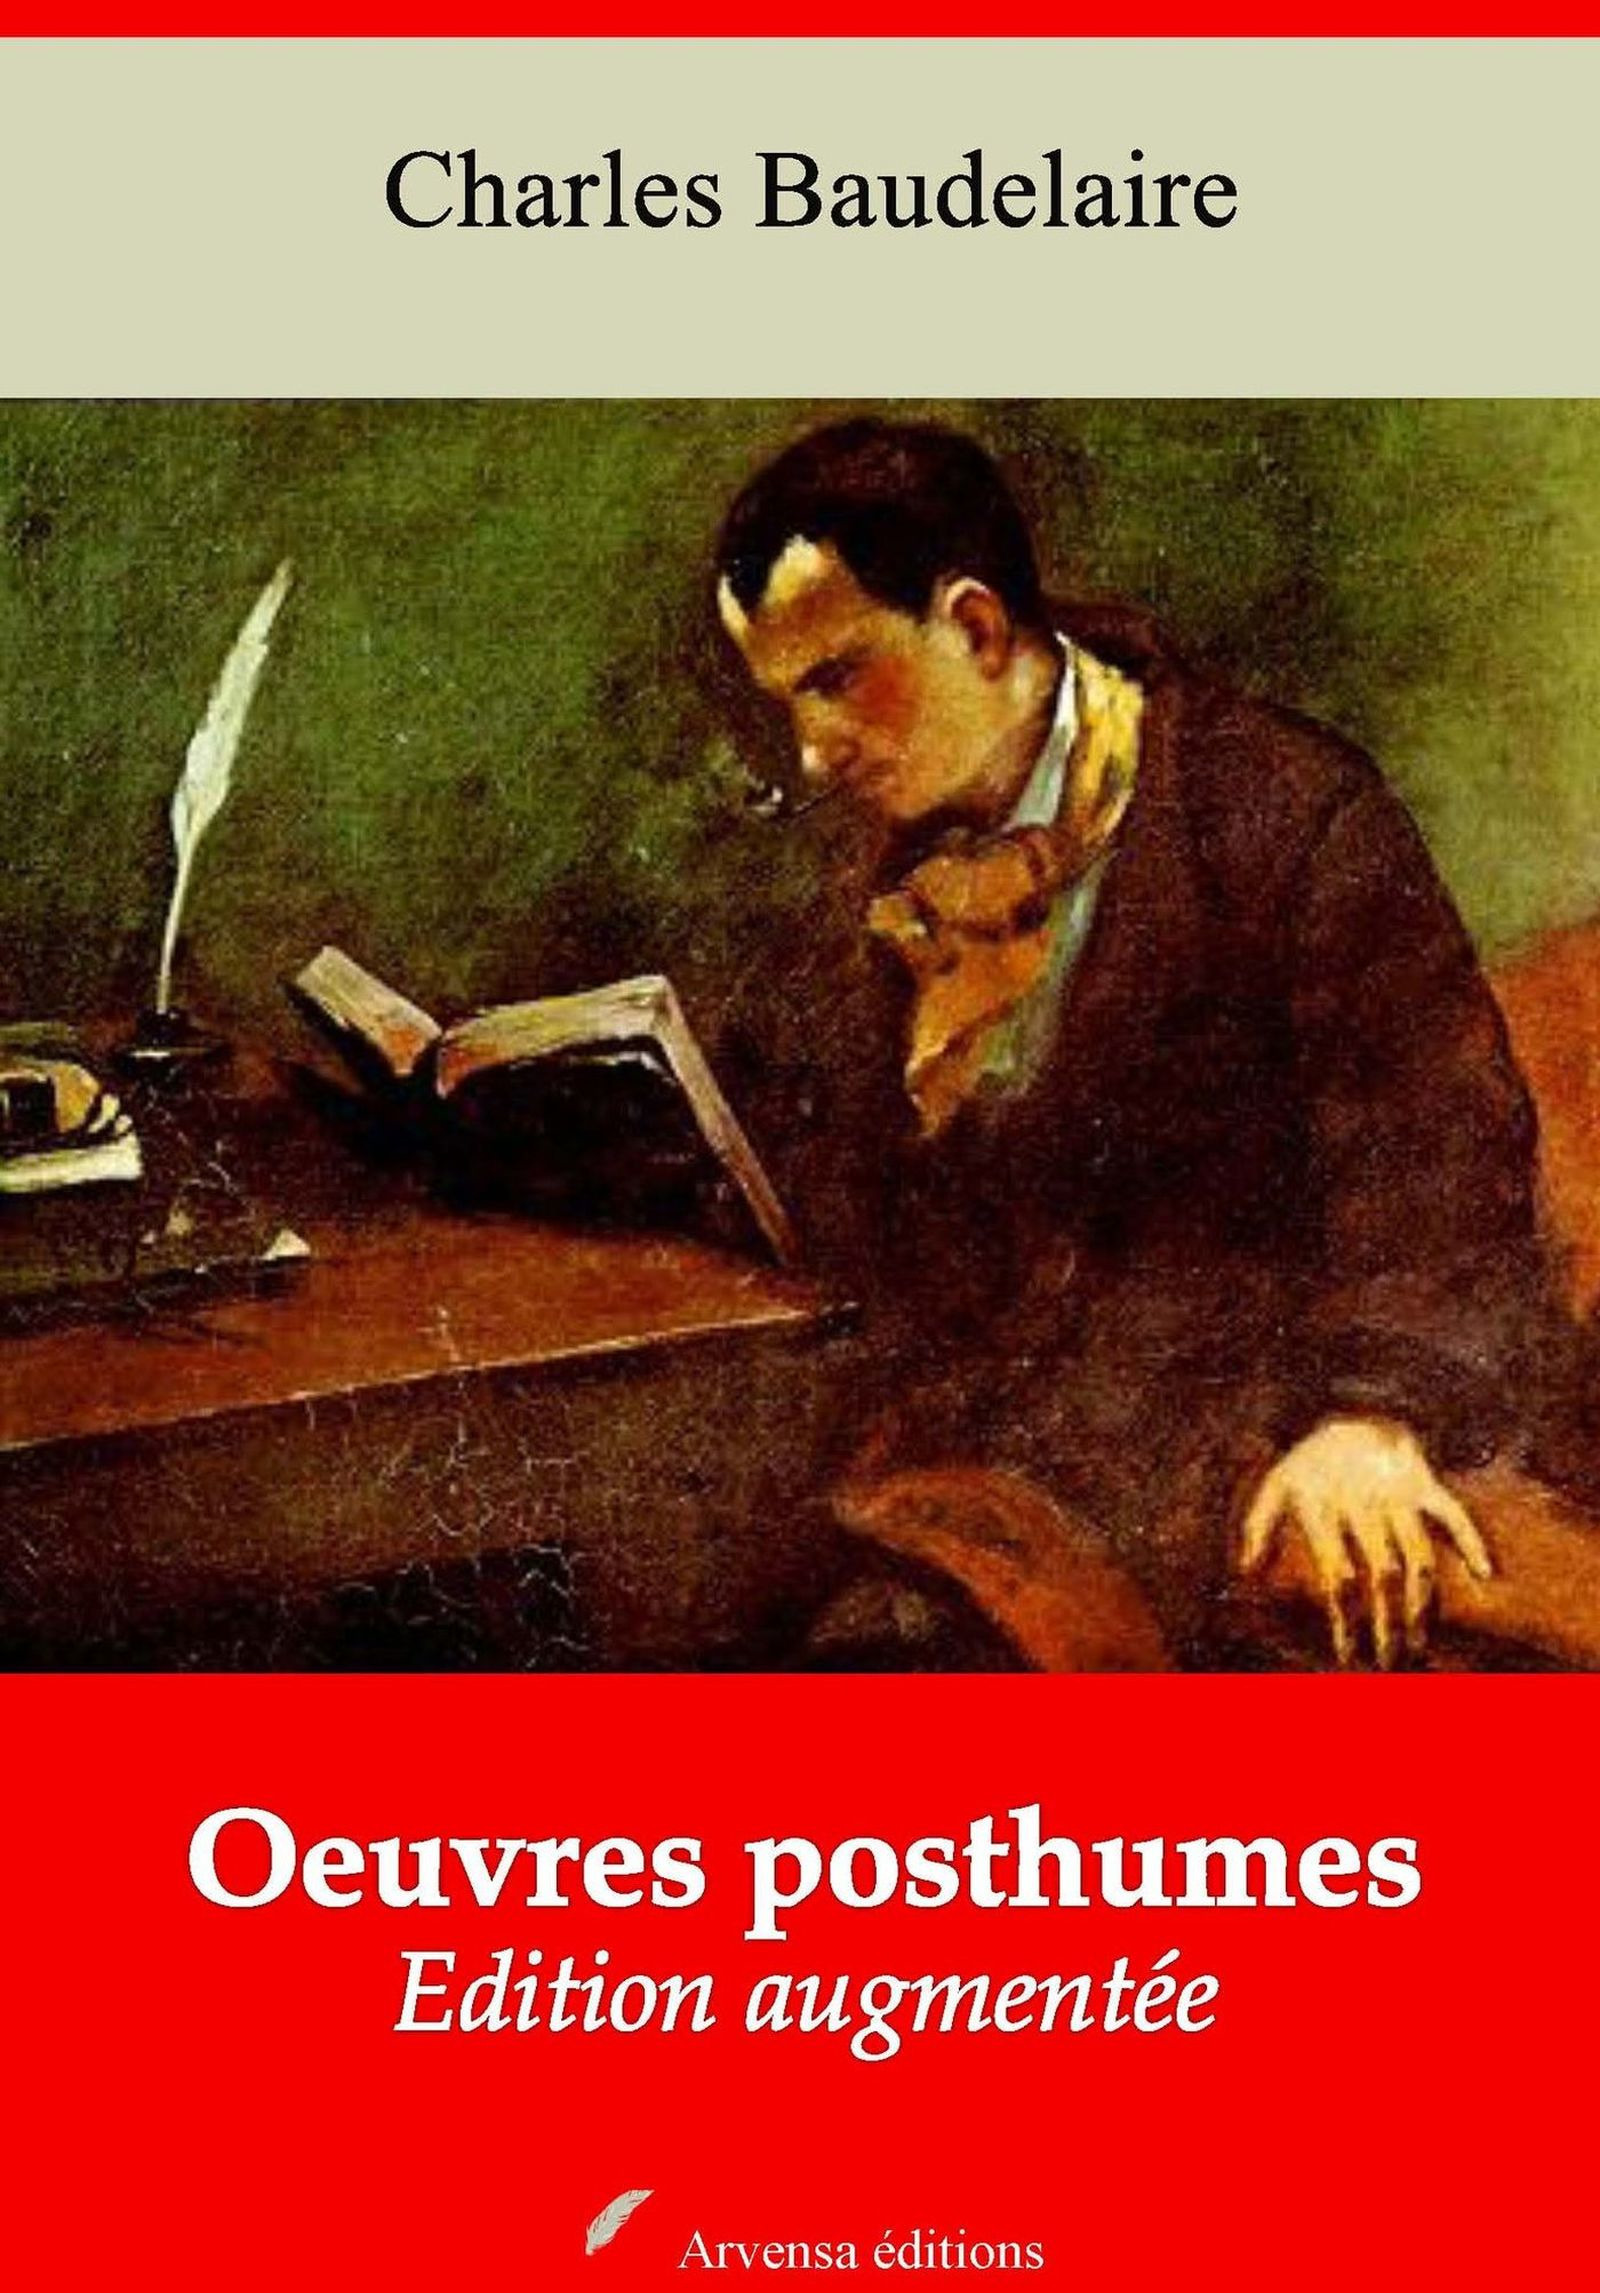 Oeuvres posthumes - suivi d'annexes